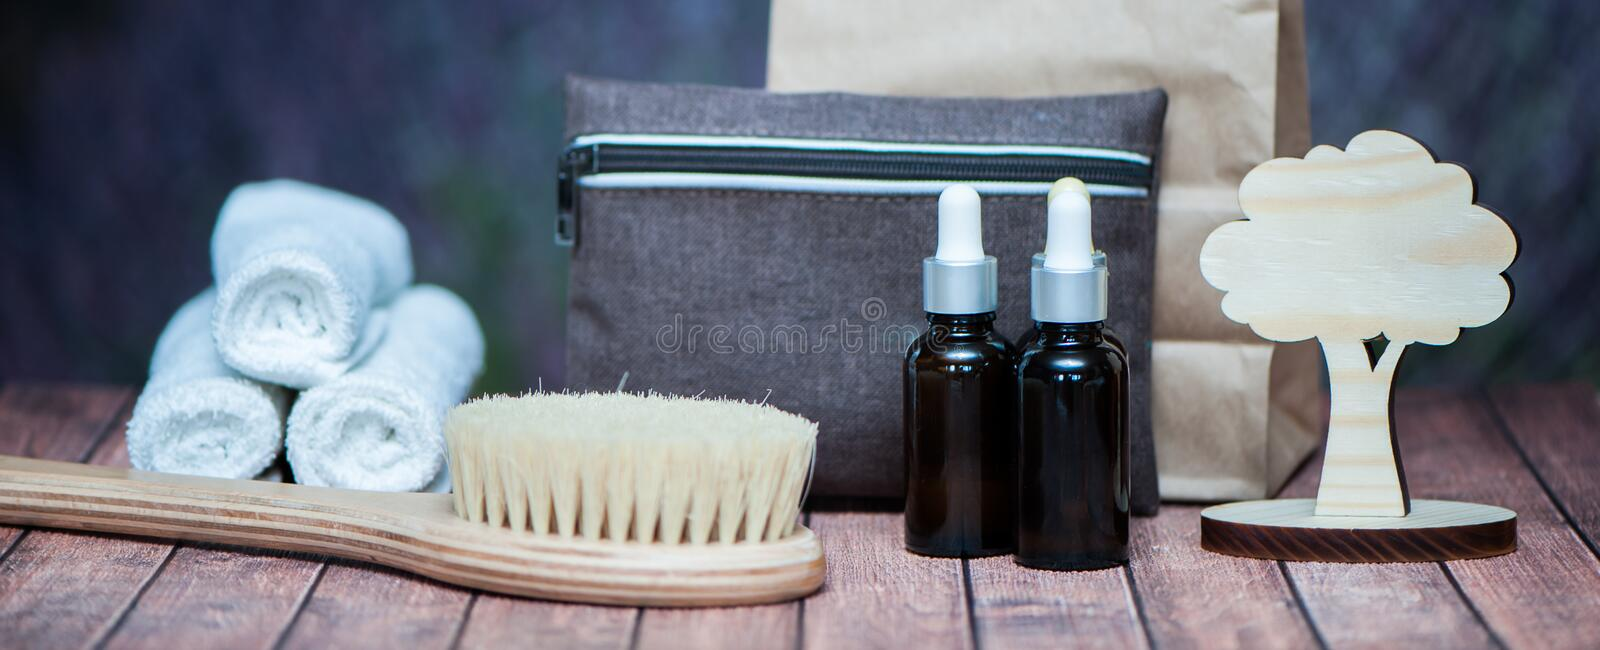 Anticellulite, organic, bio, natural cosmetics. Remedy for cellulite massage, spa. Natural oils and massage brush, blue clay royalty free stock images